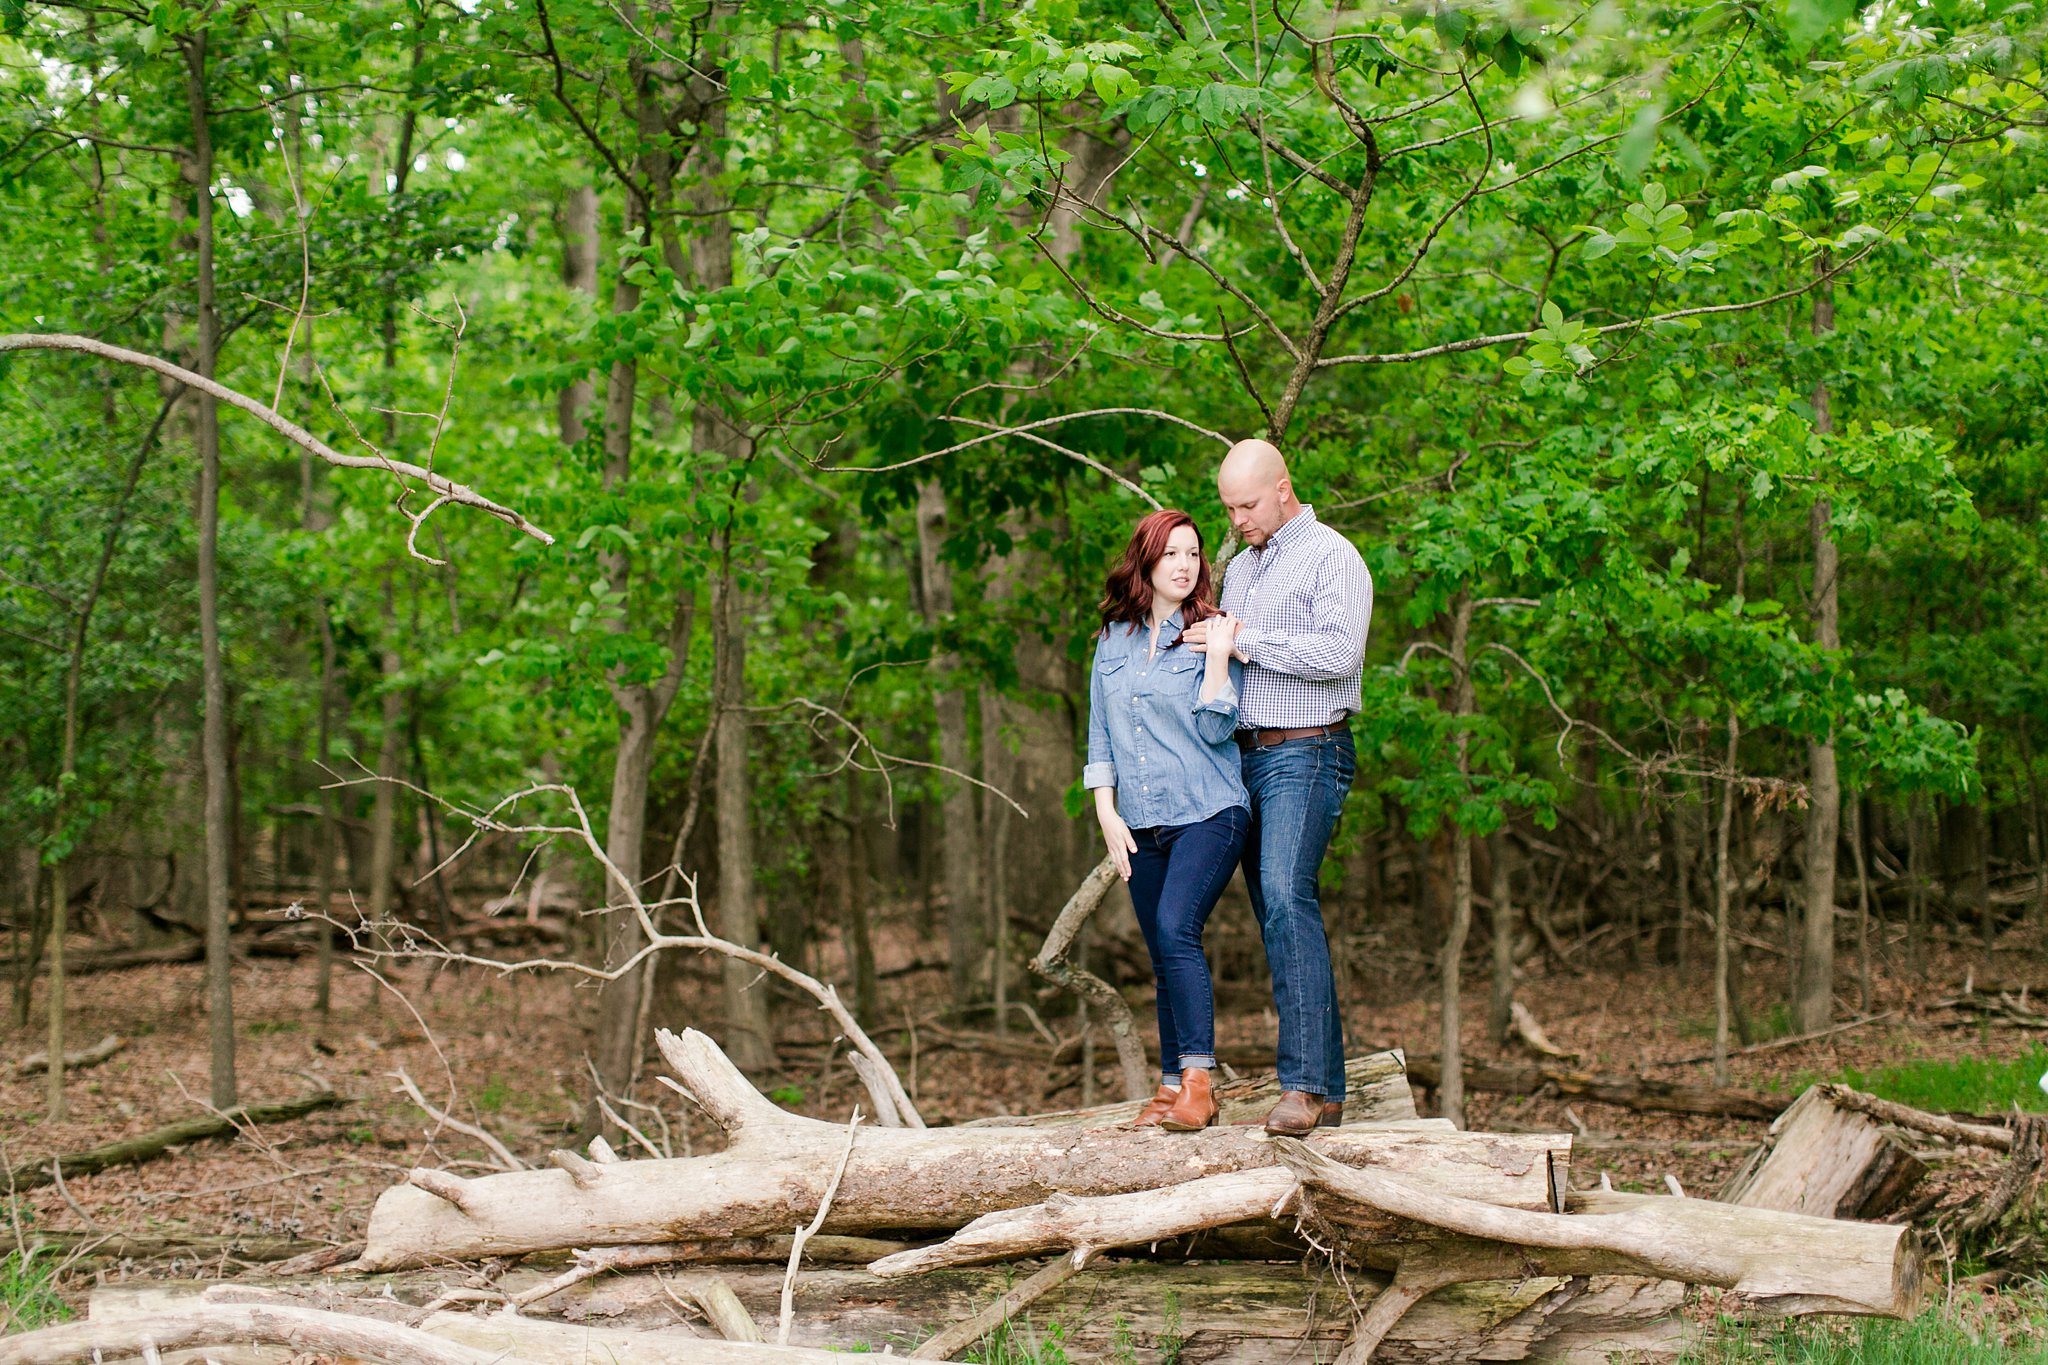 Old Town Manassas Battlefield Engagement Photos Virginia Wedding Photographer Jessica & Jason-152.jpg